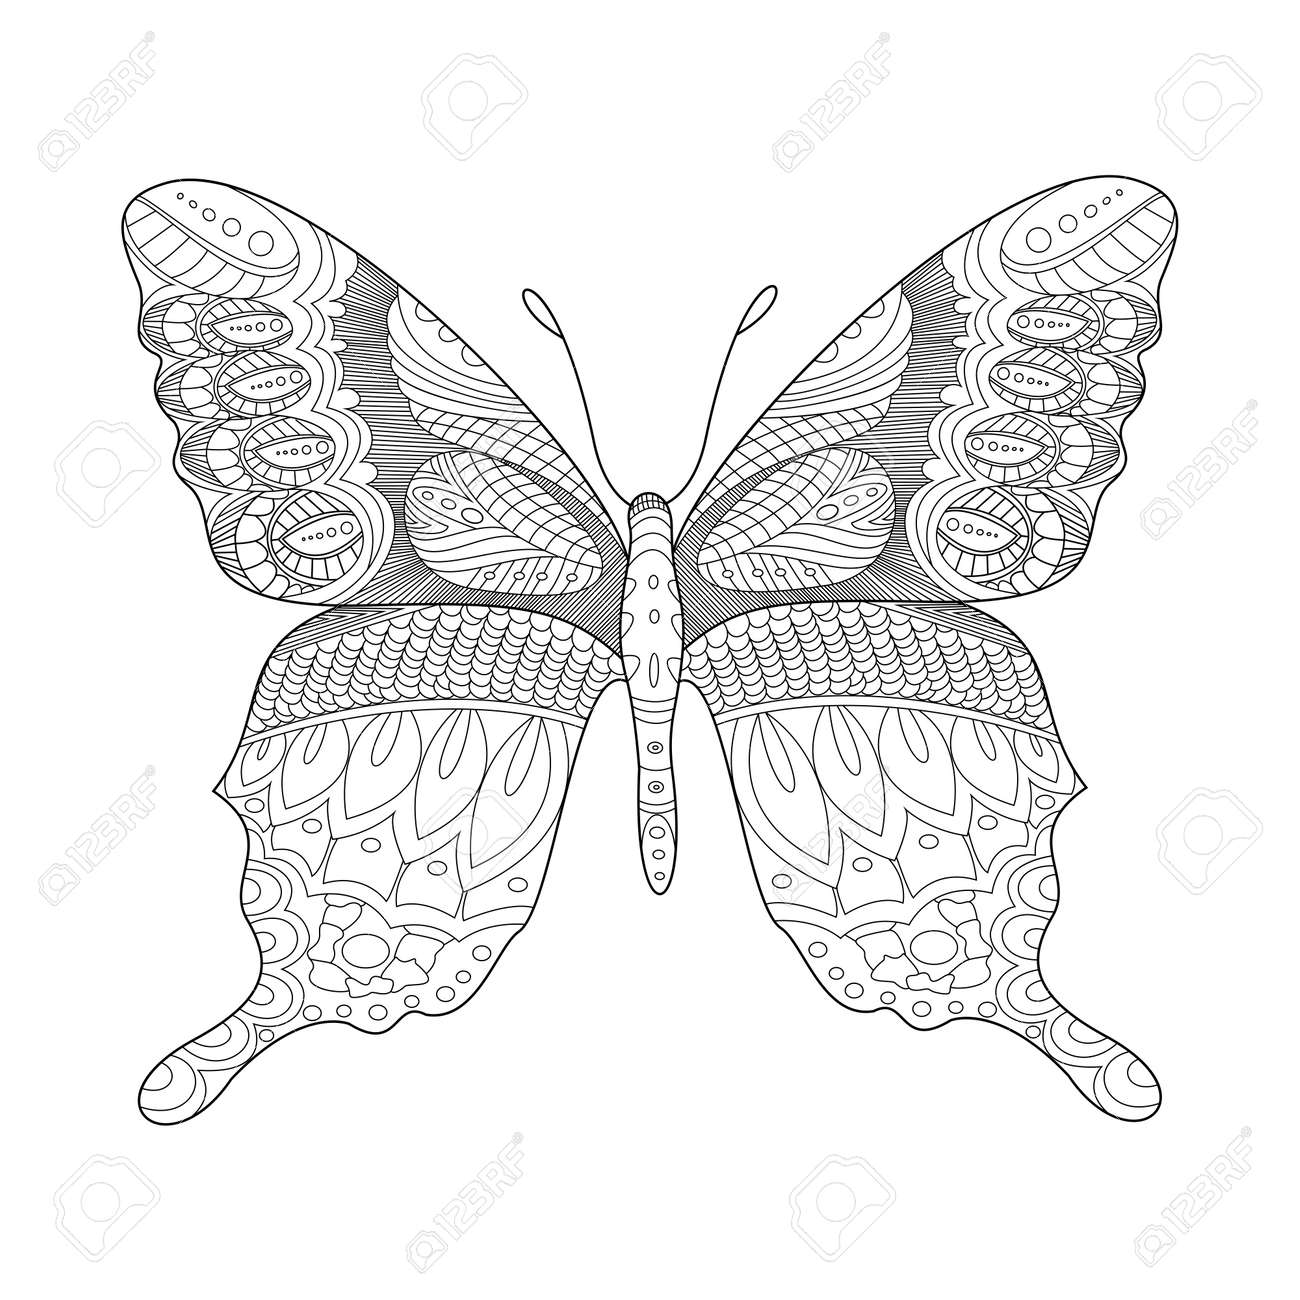 Butterfly Coloring Book For Adults Illustration. Anti-stress ...